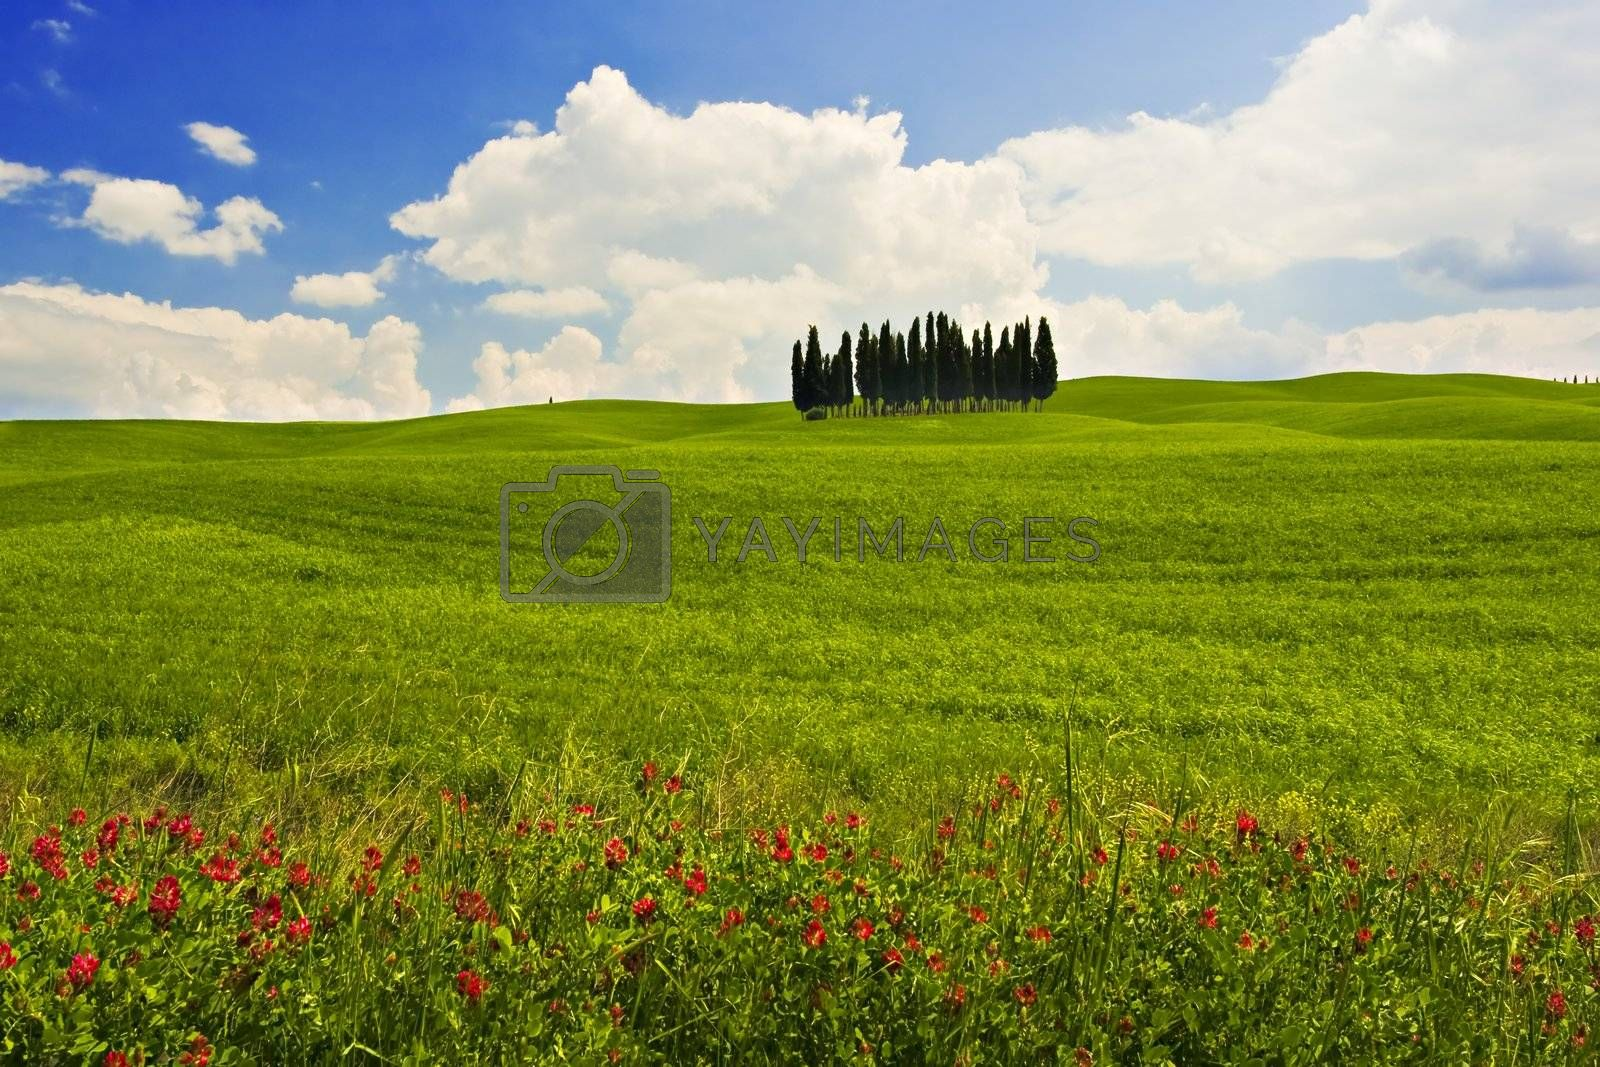 Landscape : Green field with cypress trees and red flowers, blue sky and big white fluffy clouds. Val D'Orcia,Tuscany, Italy